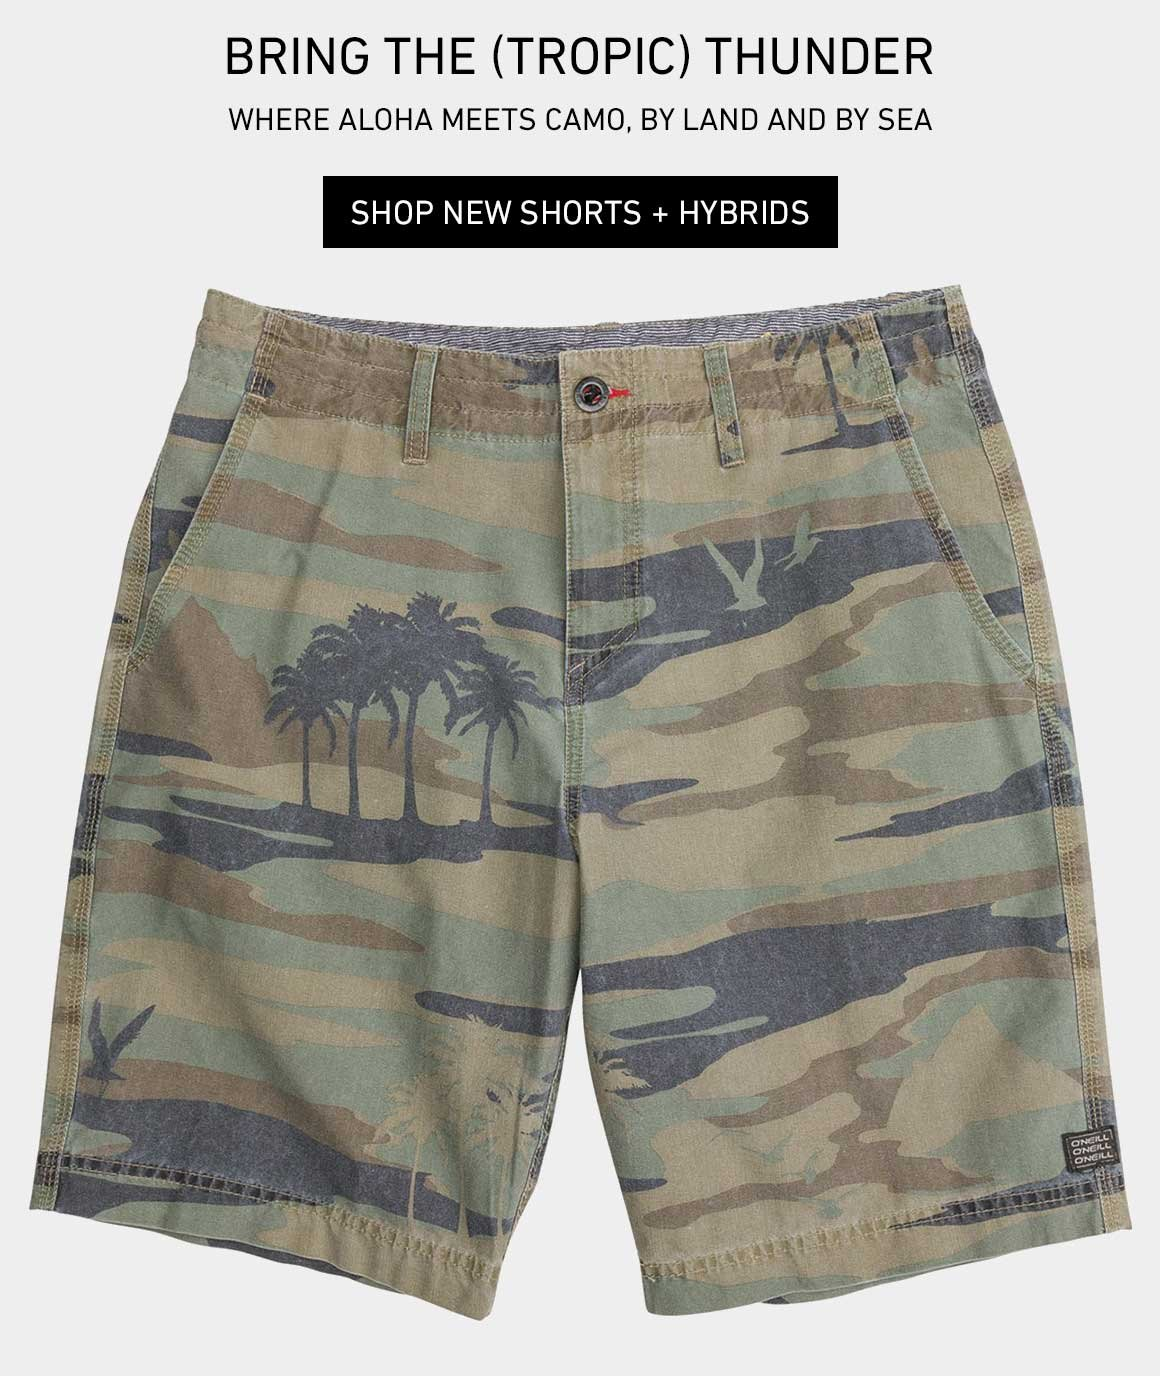 Bring The (Tropic) Thunder: New Shorts